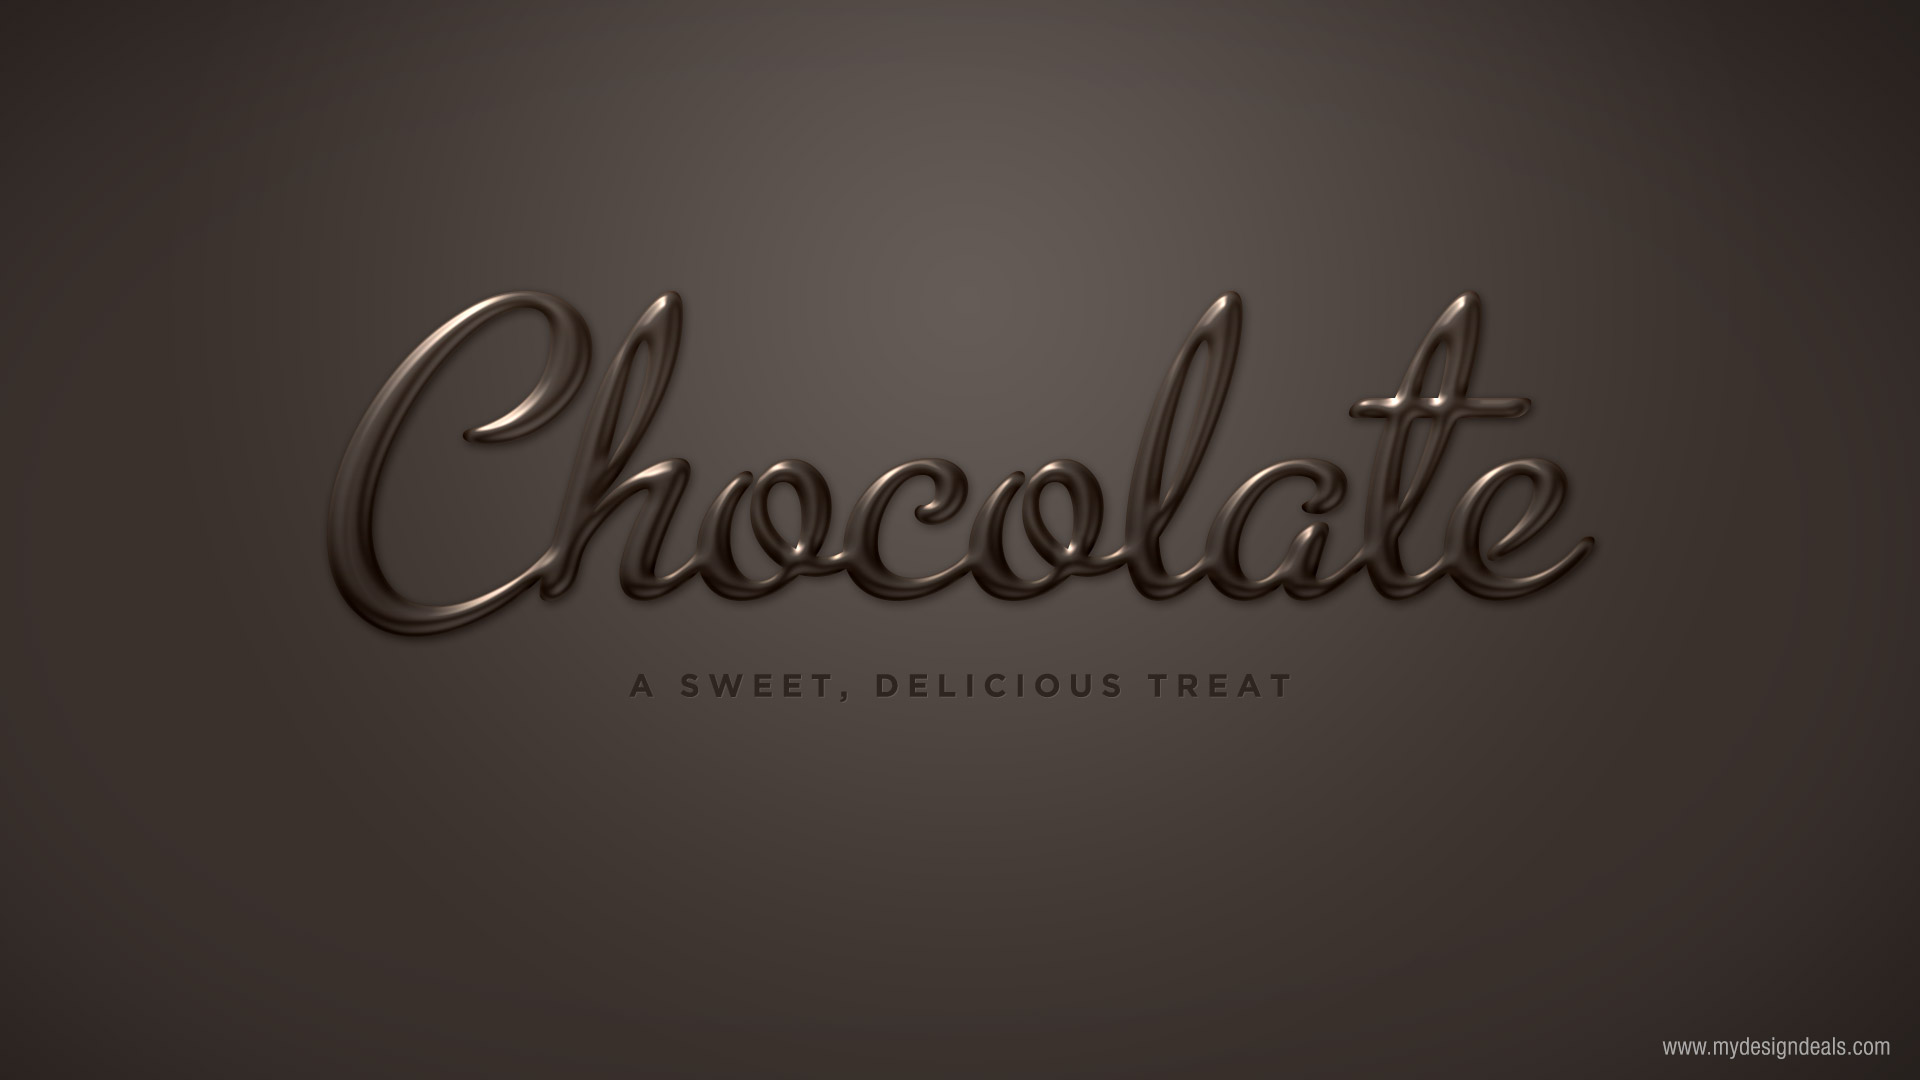 Create A Smooth Chocolate Text Effect In Photoshop A Graphic Design Blog